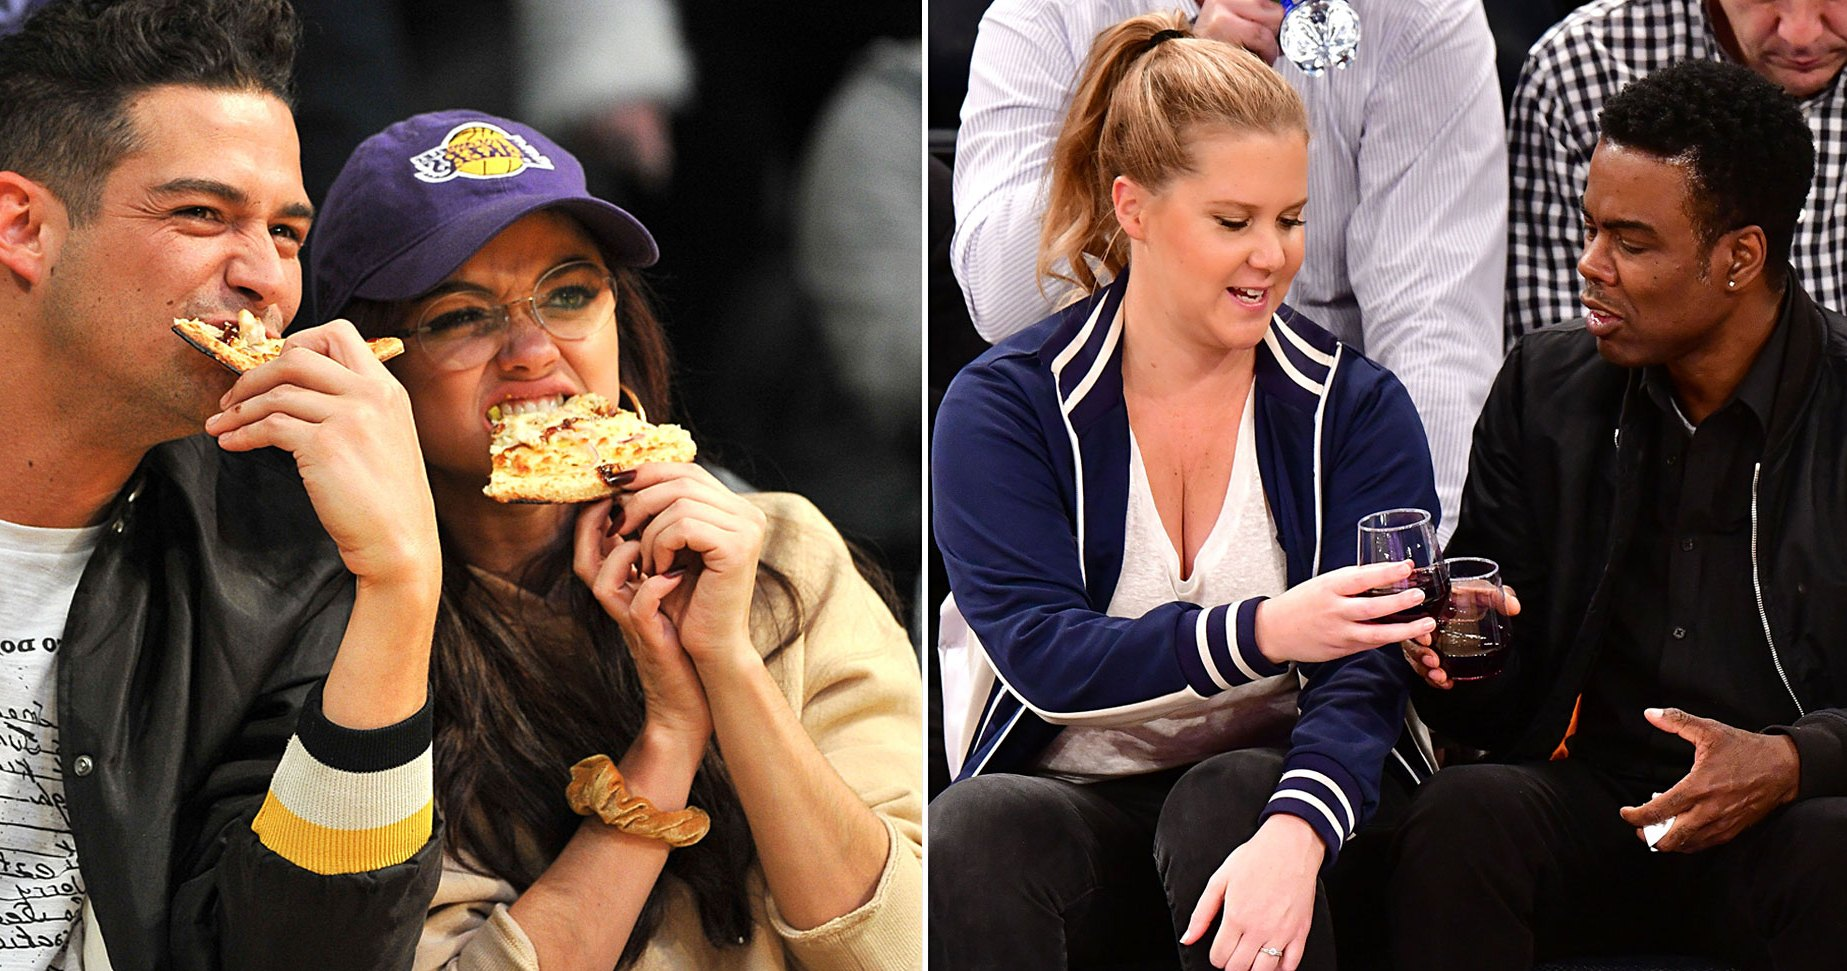 Celebs Eating Courtside: See Justin Bieber, Charlize Theron, Jennifer Lopez and More Snack While Watching Sports